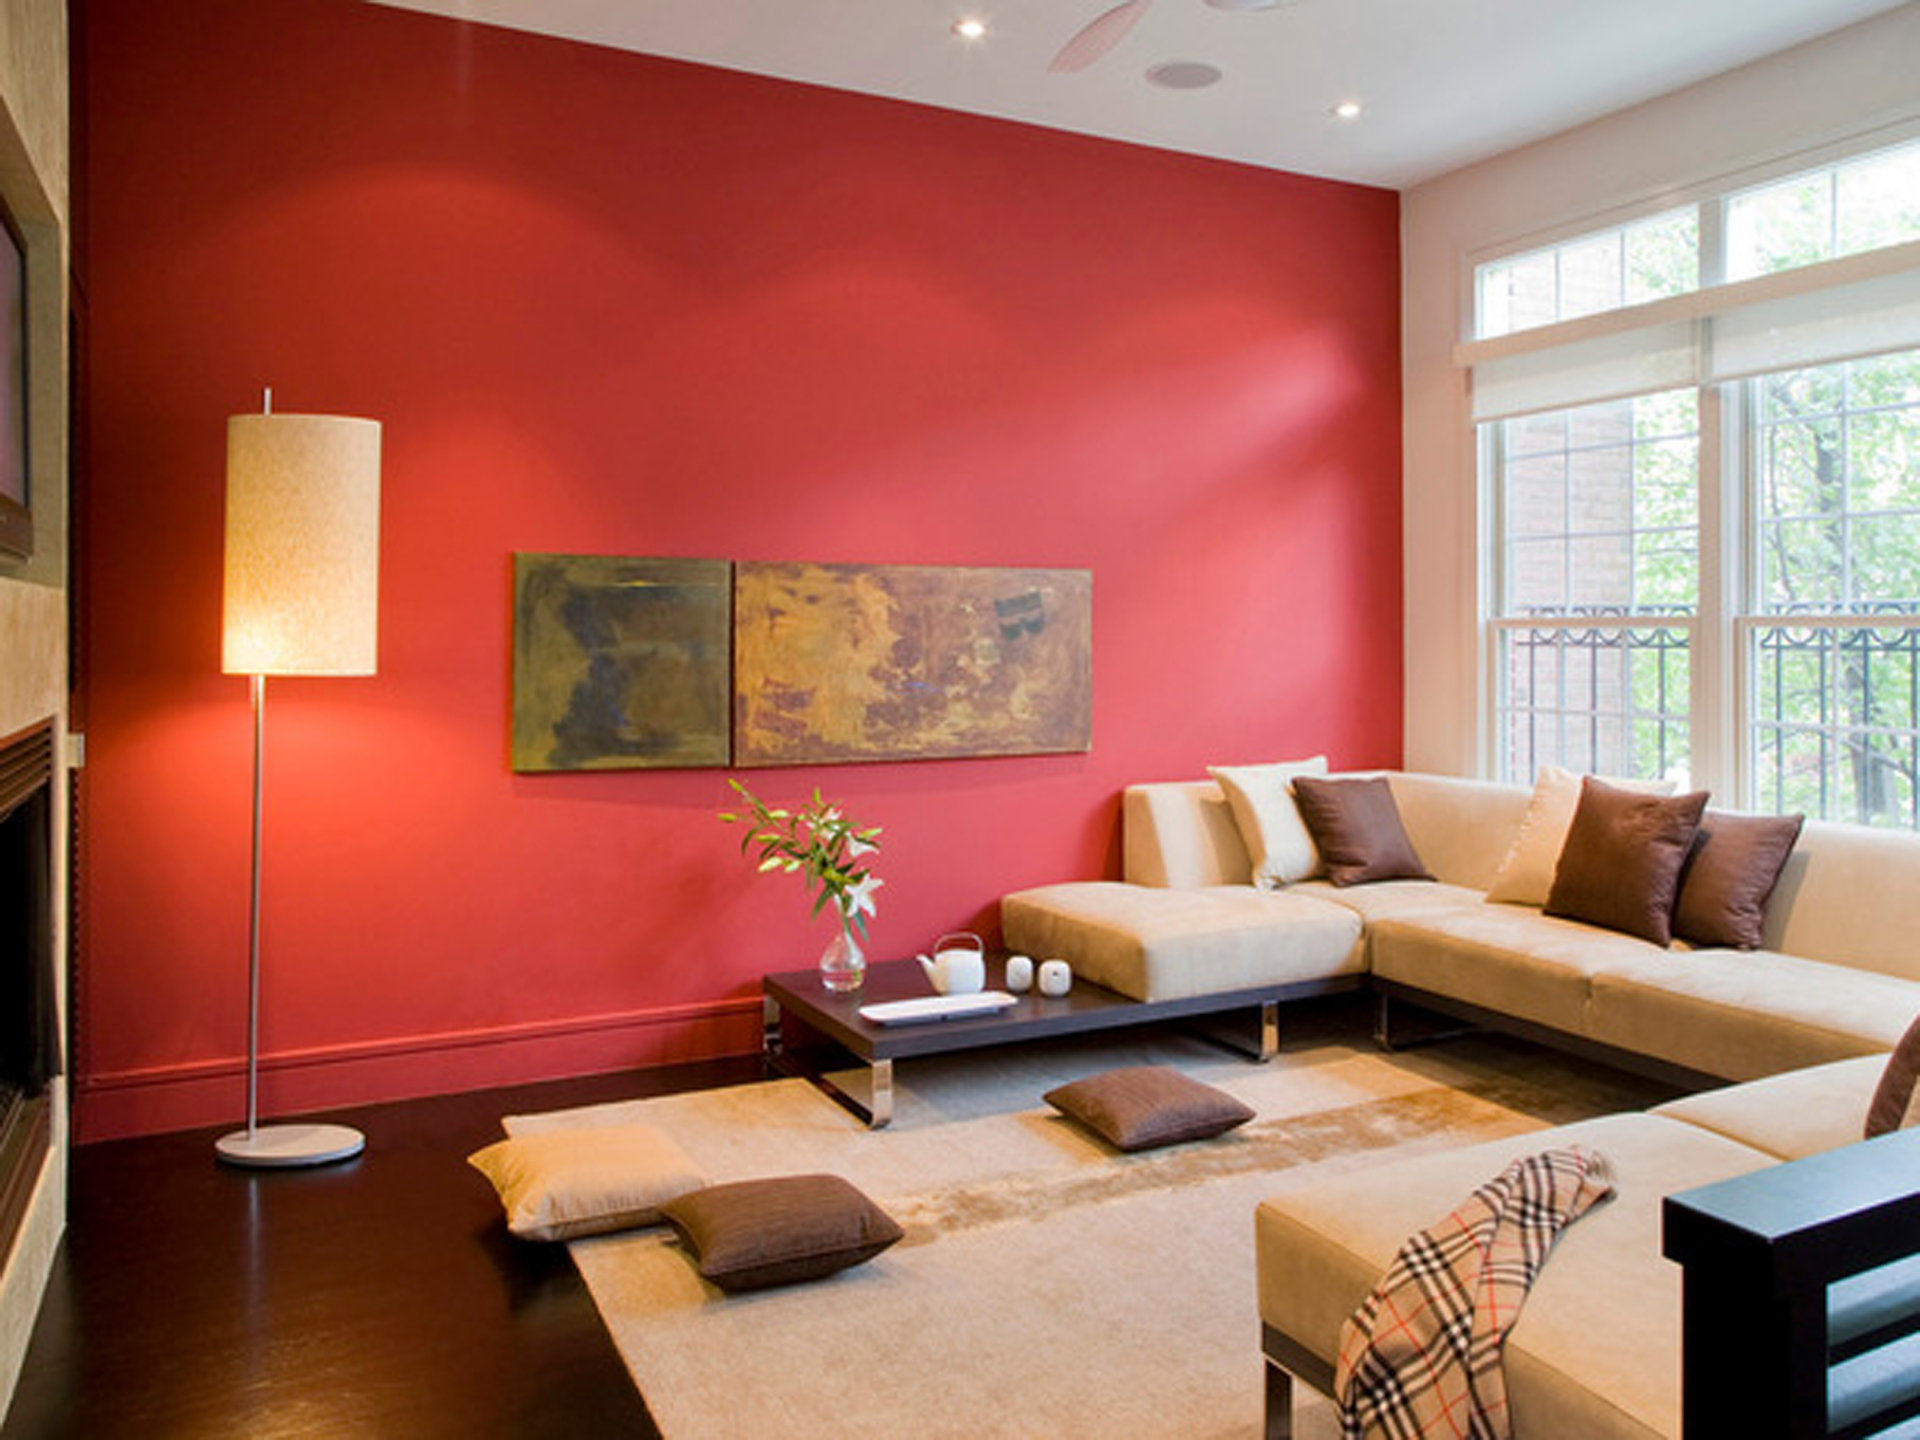 Remarkable Red Accent Wall Living Room 1920 x 1440 · 959 kB · jpeg